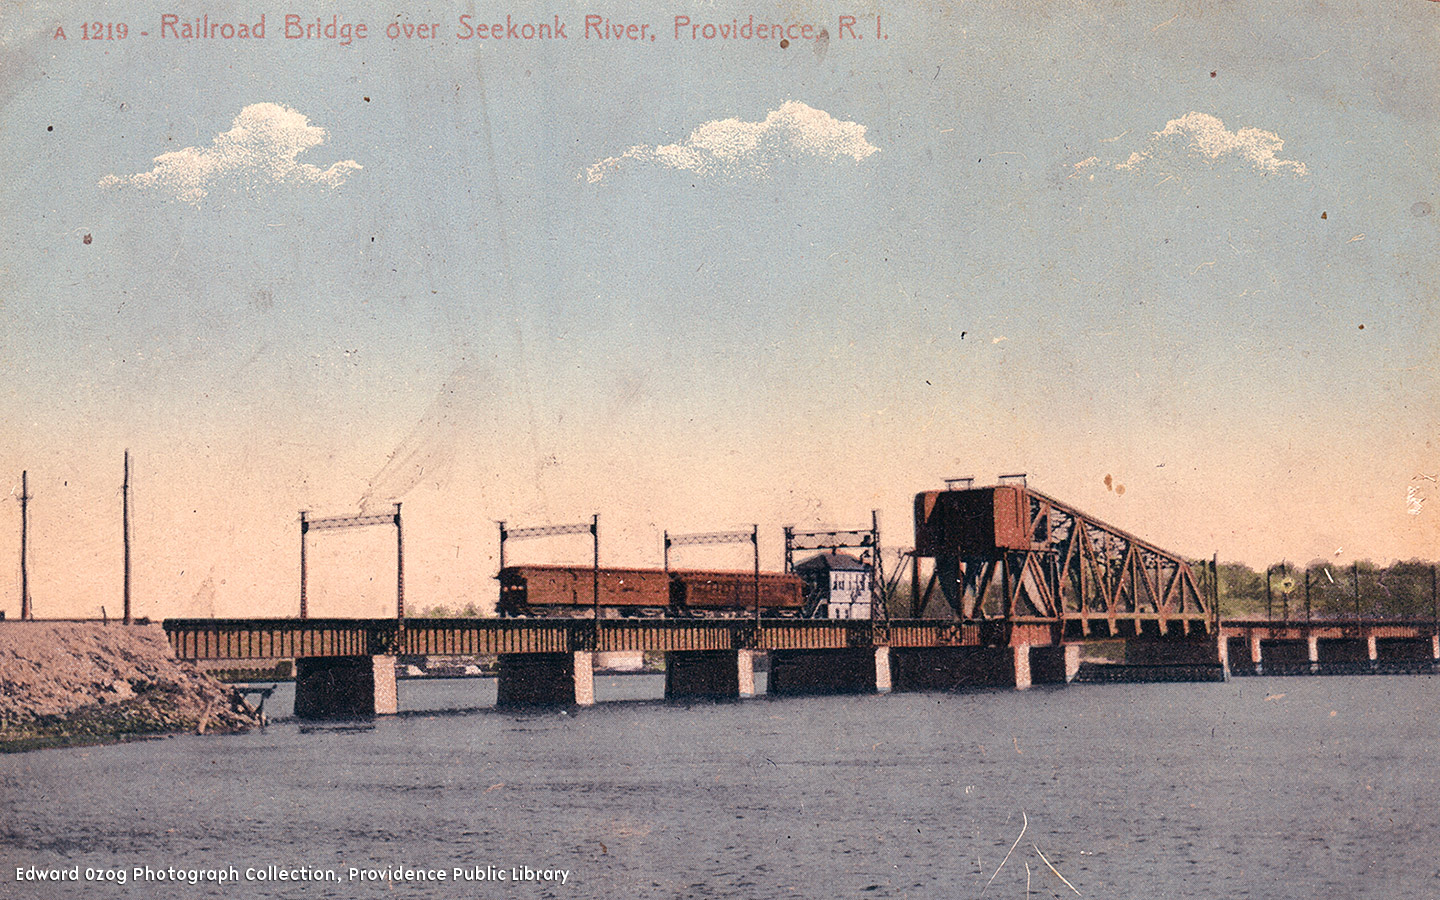 A steel and iron truss lift bridge that is two railroad ties wide and ever since 1976, stuck in the up position to allow boats to pass underneath and they travel up and down the Seekonk river